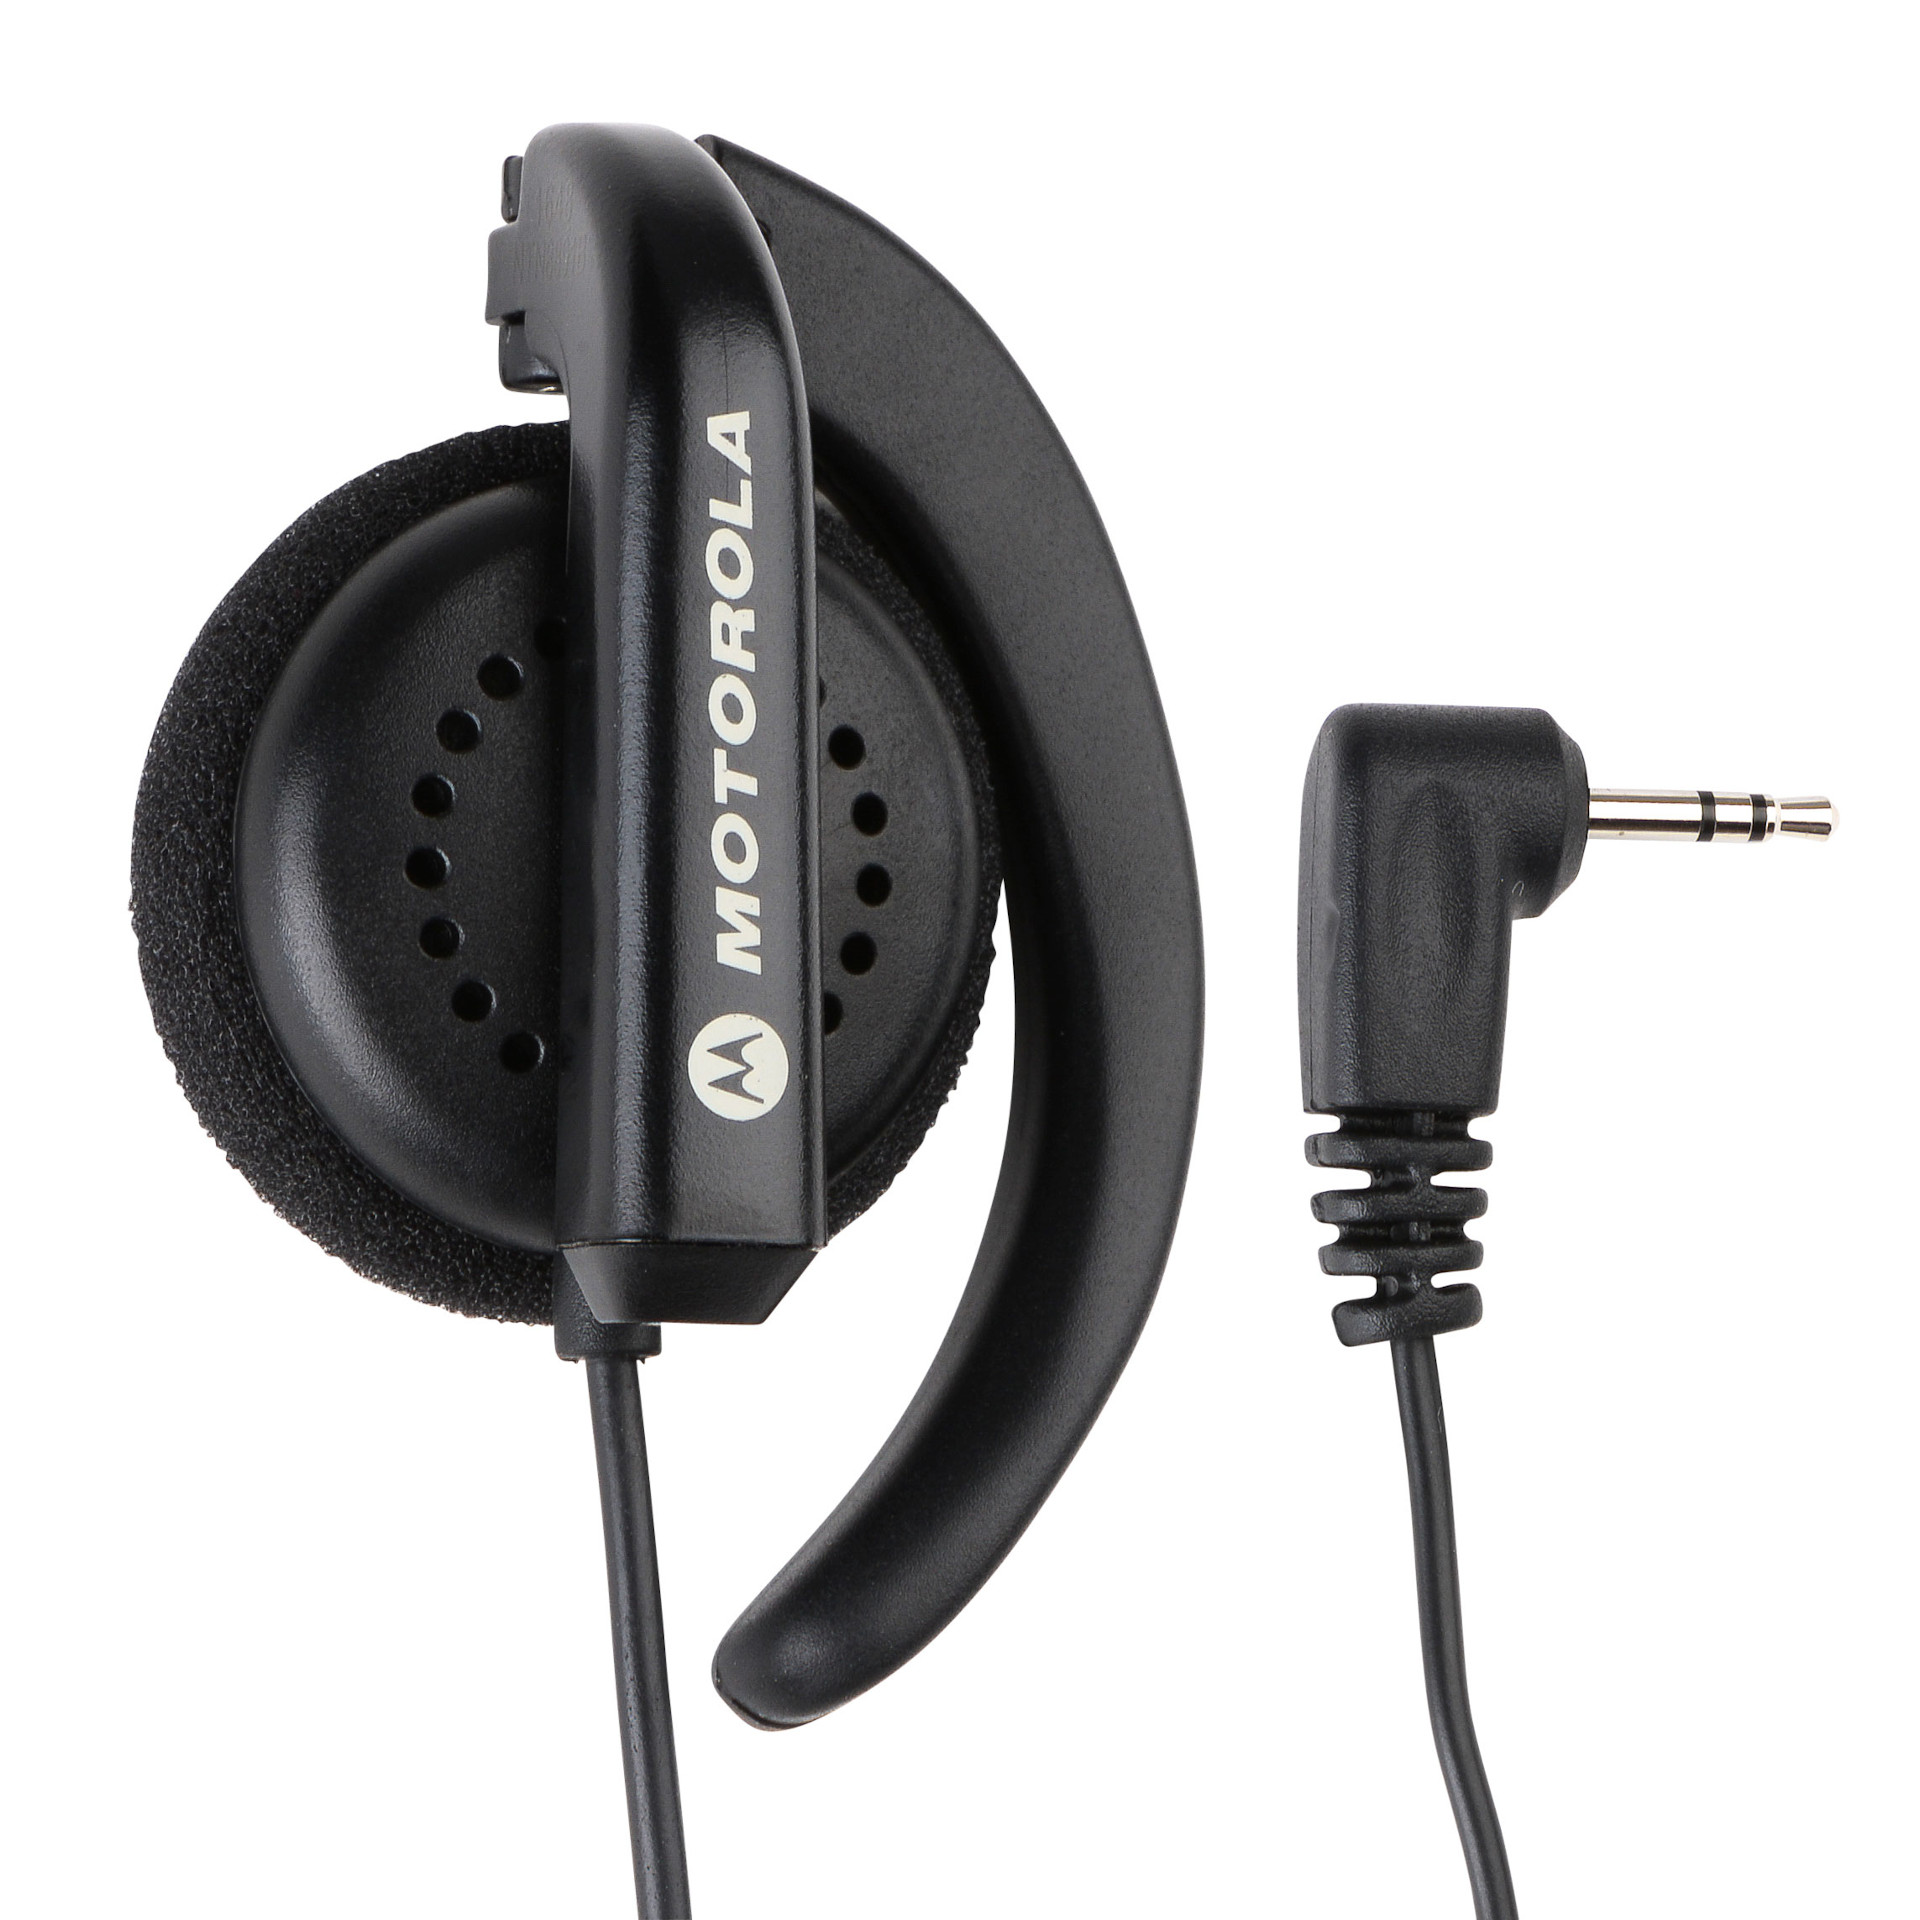 motorola 53728 Earpiece with flex receiver